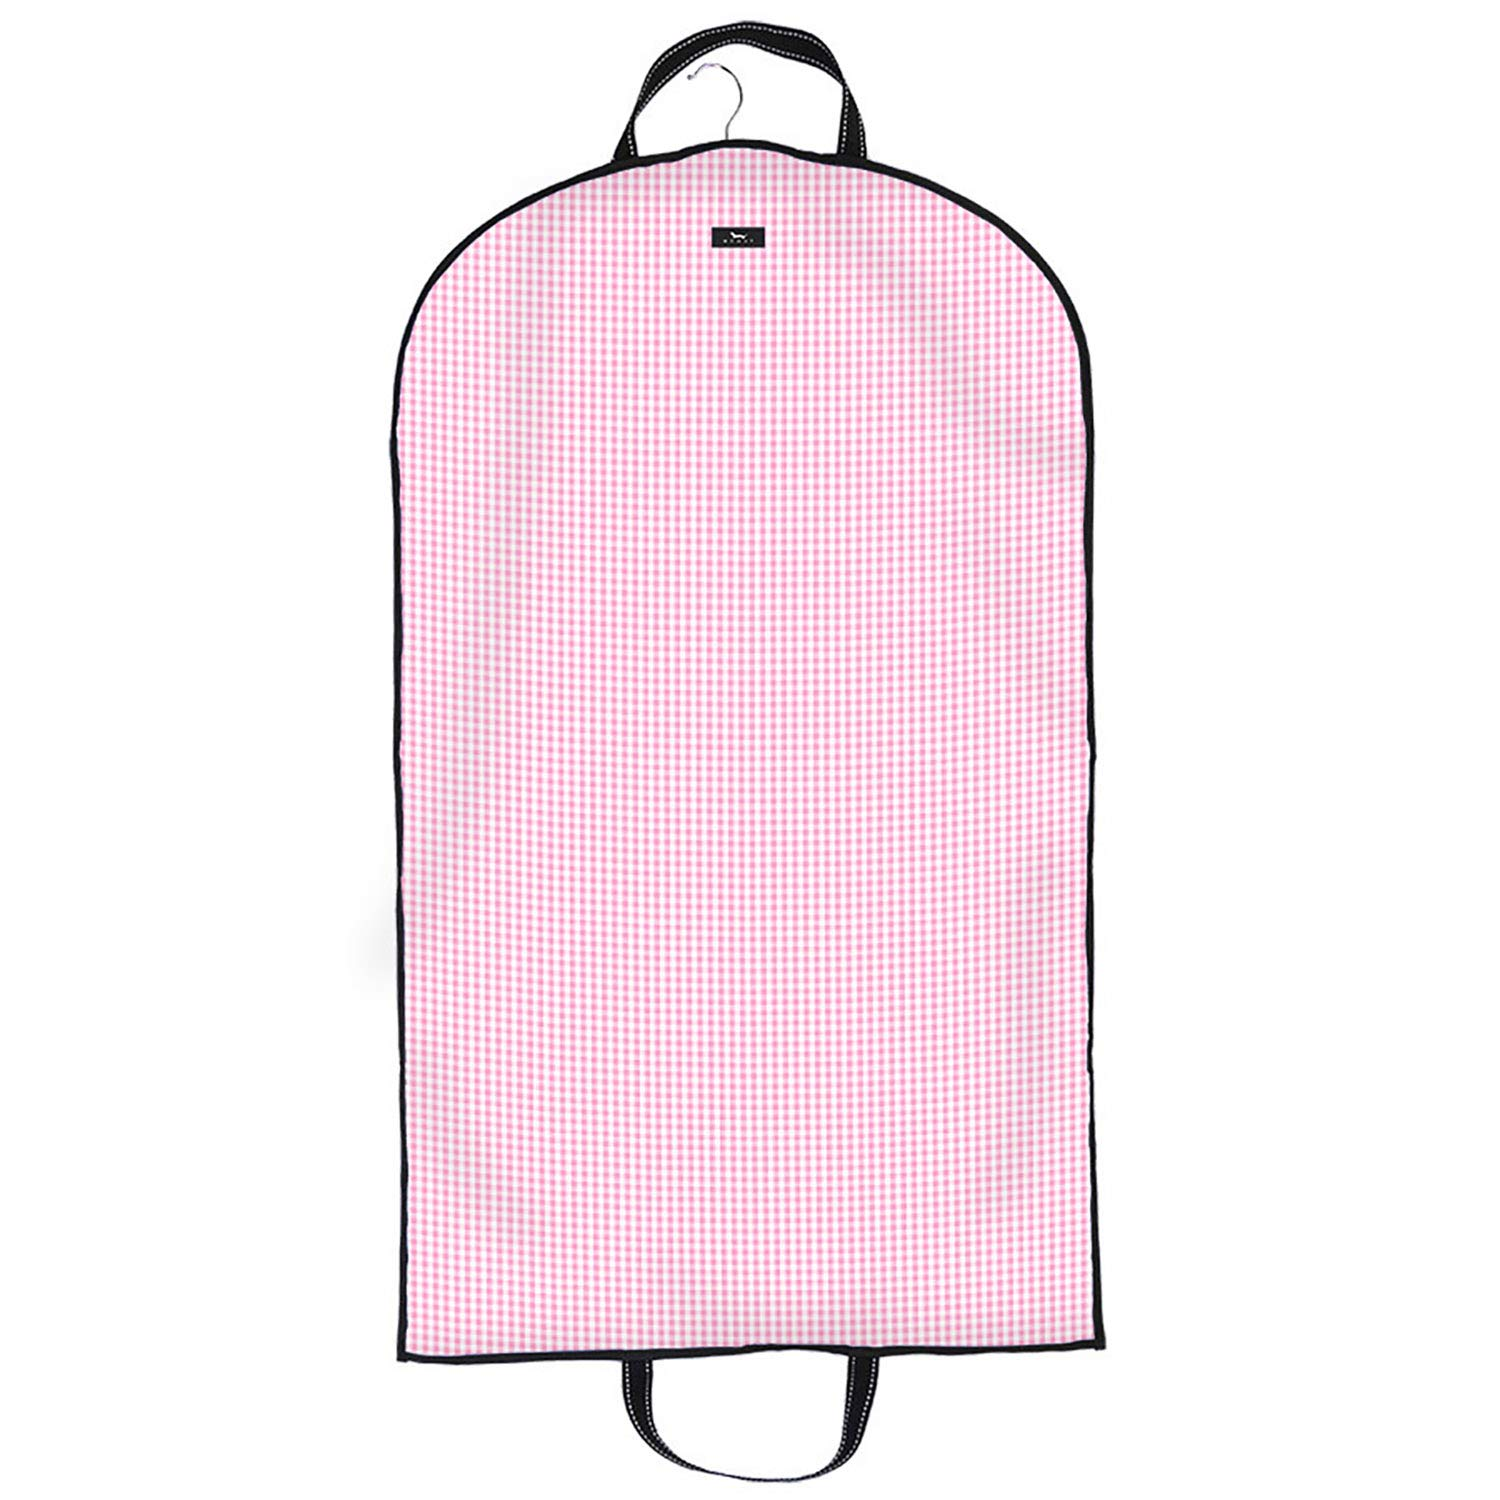 SCOUT GOWN AND OUT Garment Bag for Travel, Folding Garment Bag for Women (Multiple Patterns Available)